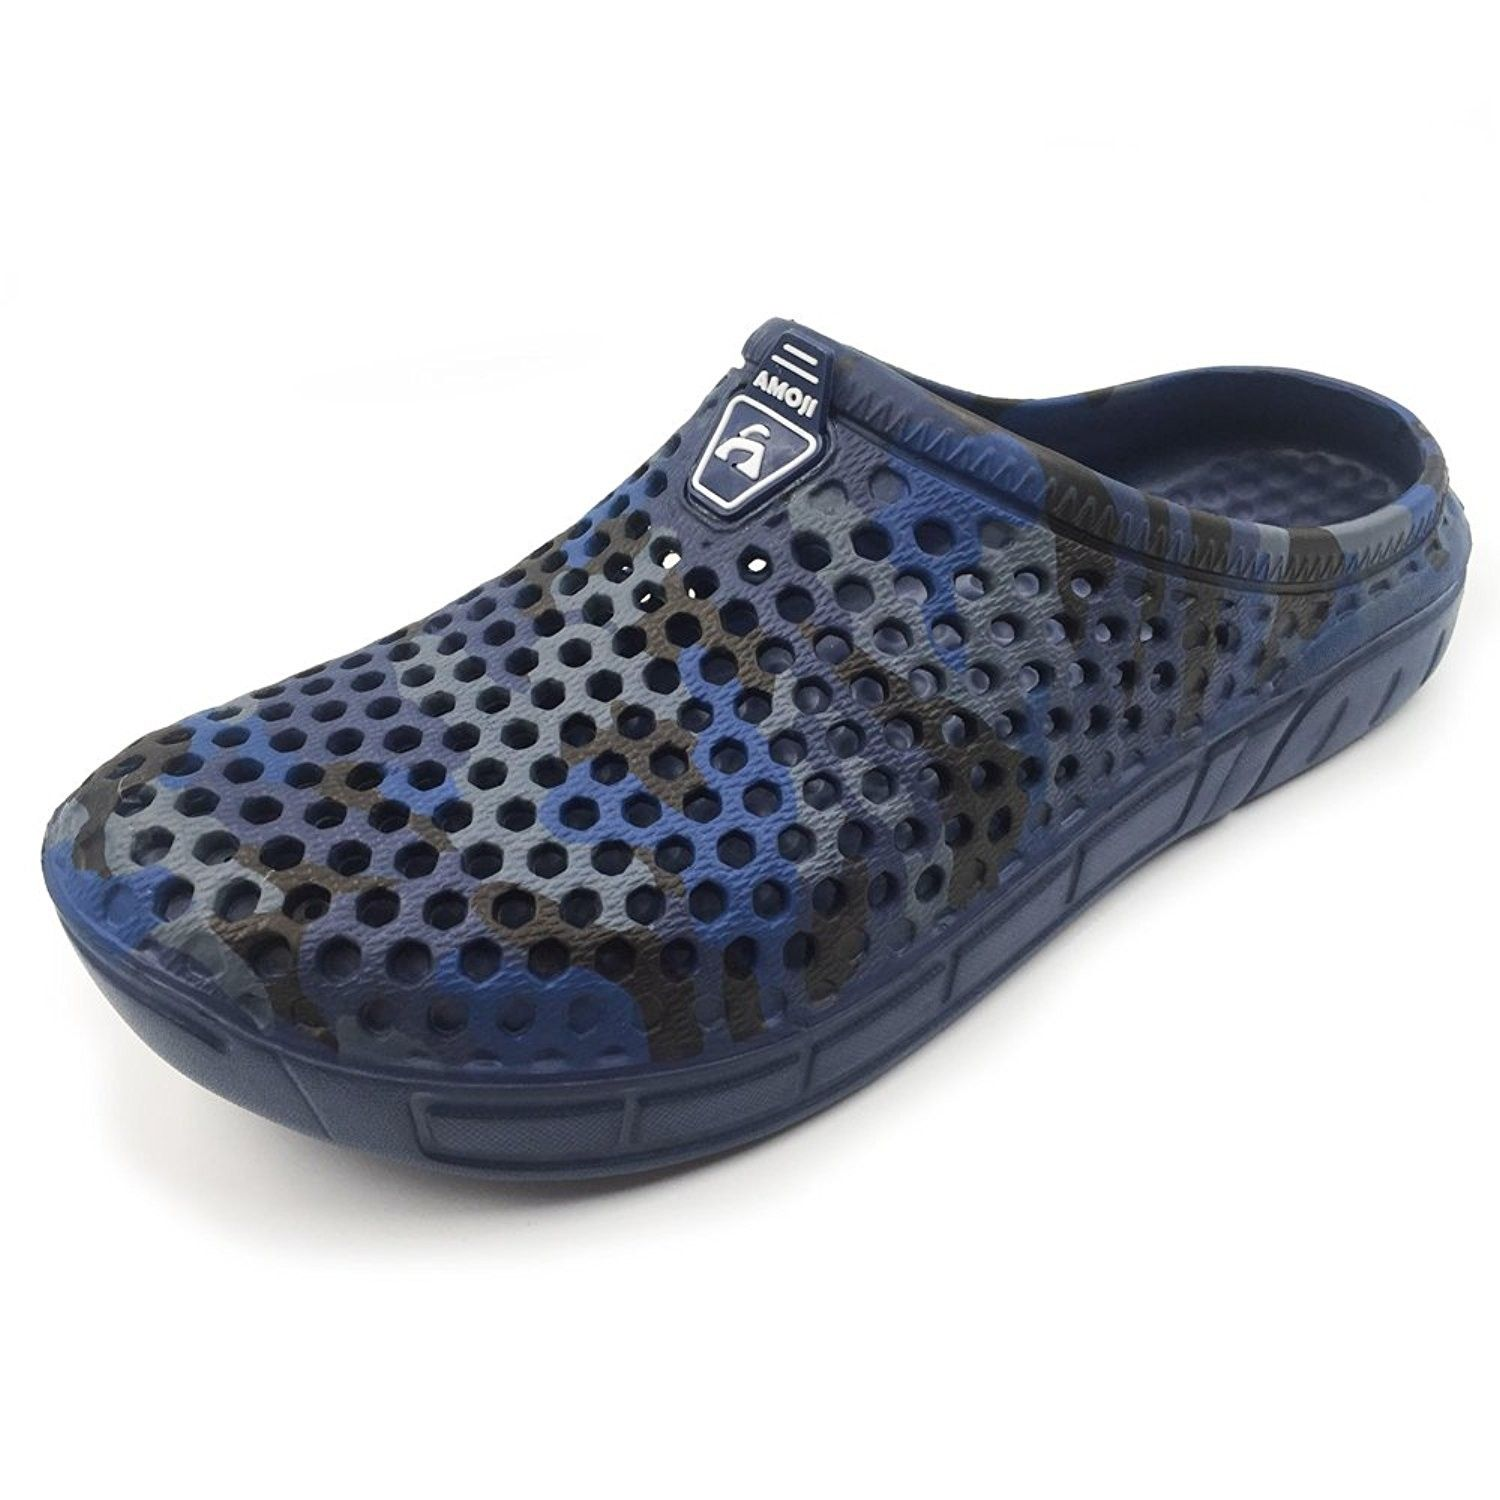 128f8fb0793315 Unisex Camouflage Slippers Clogs Sandals - Navy - CN1805TLKW6 ...